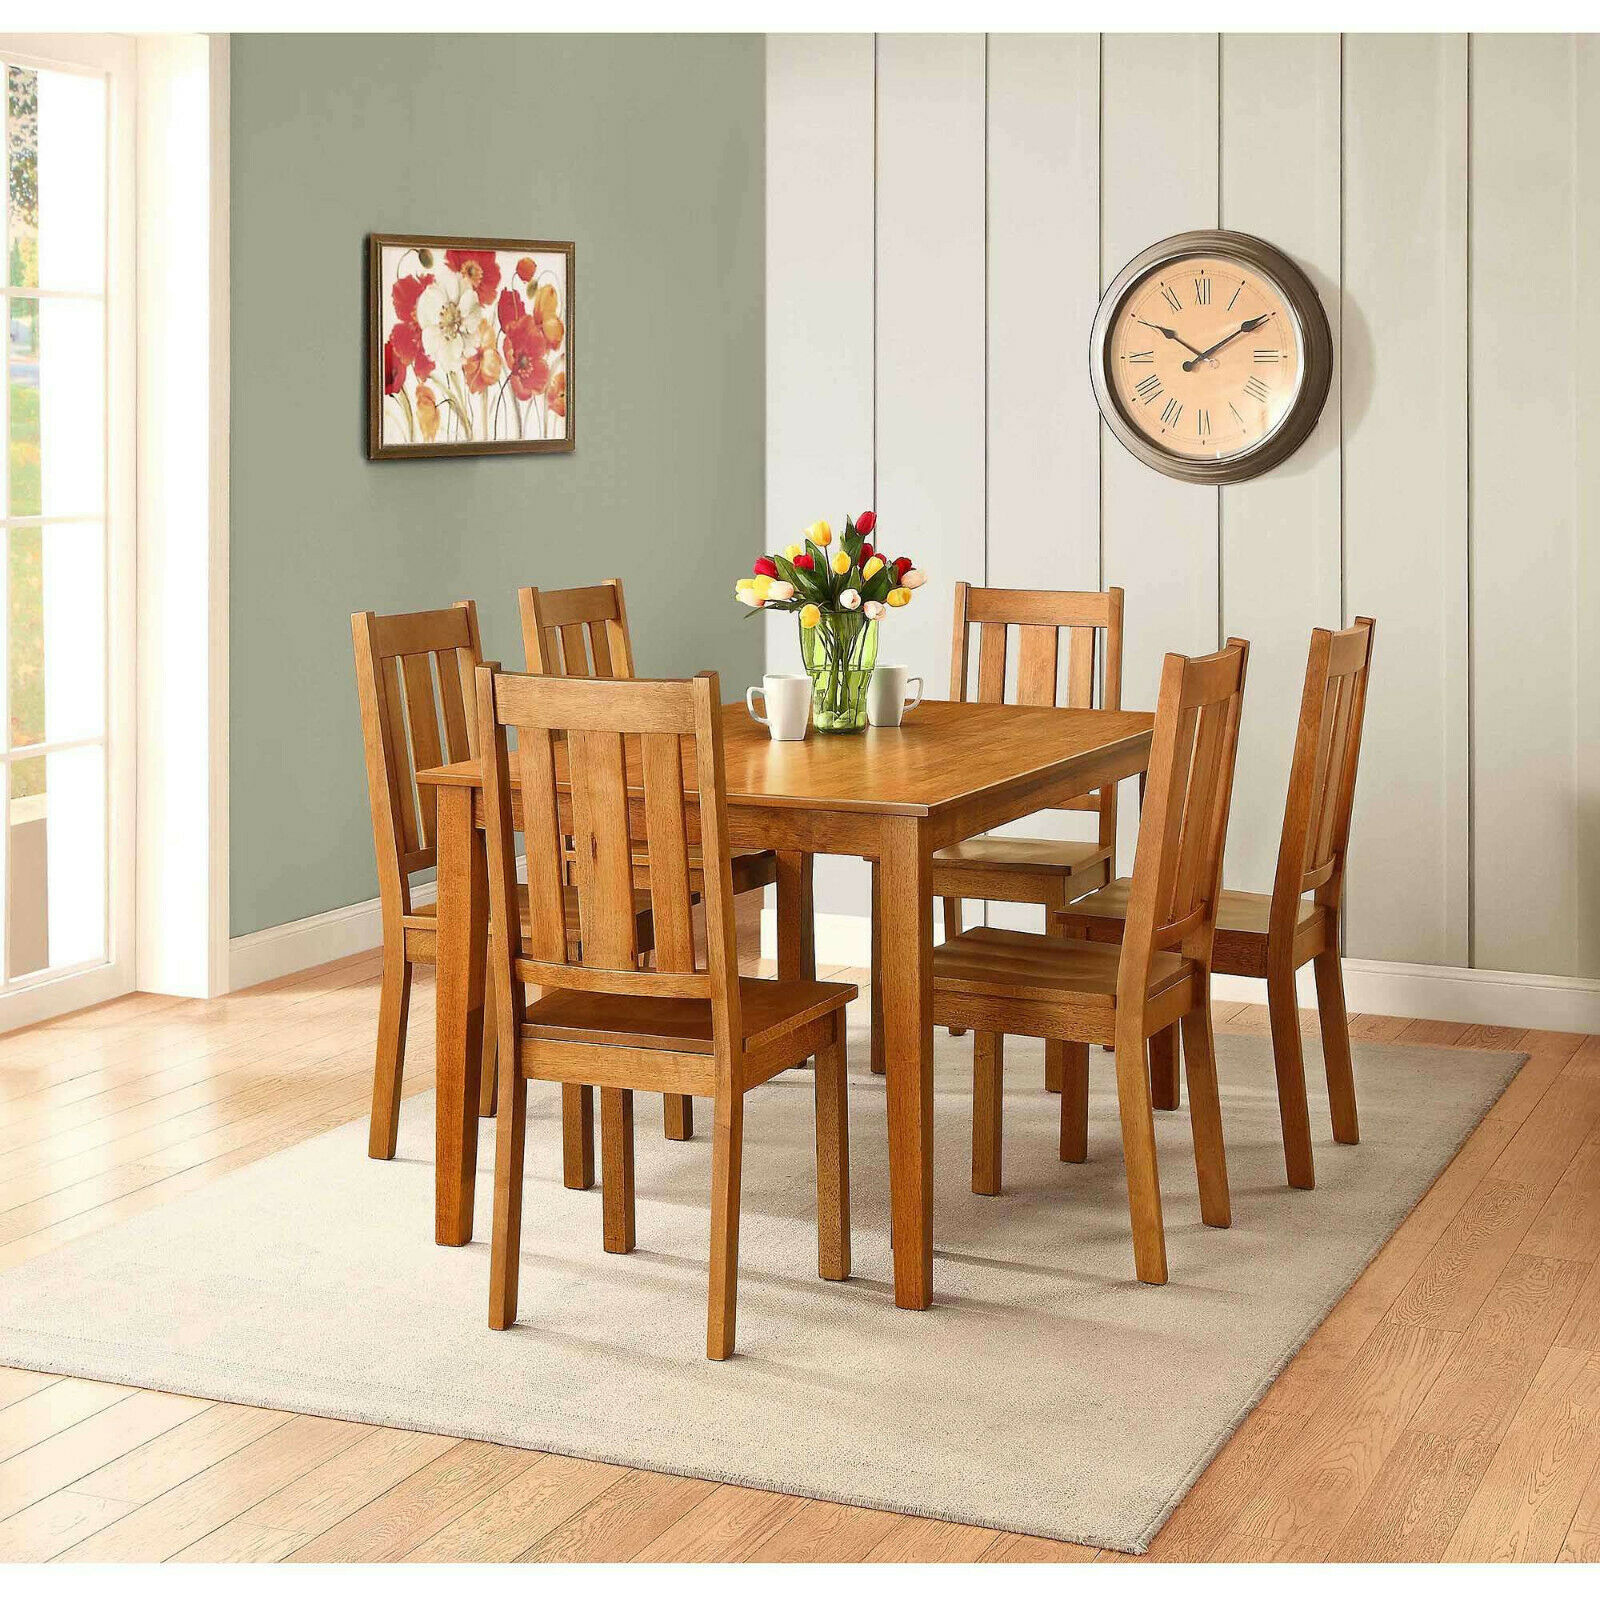 Lexington Bob Timberlake Farmhouse Dining Table And 6 Chairs For Sale Online Ebay